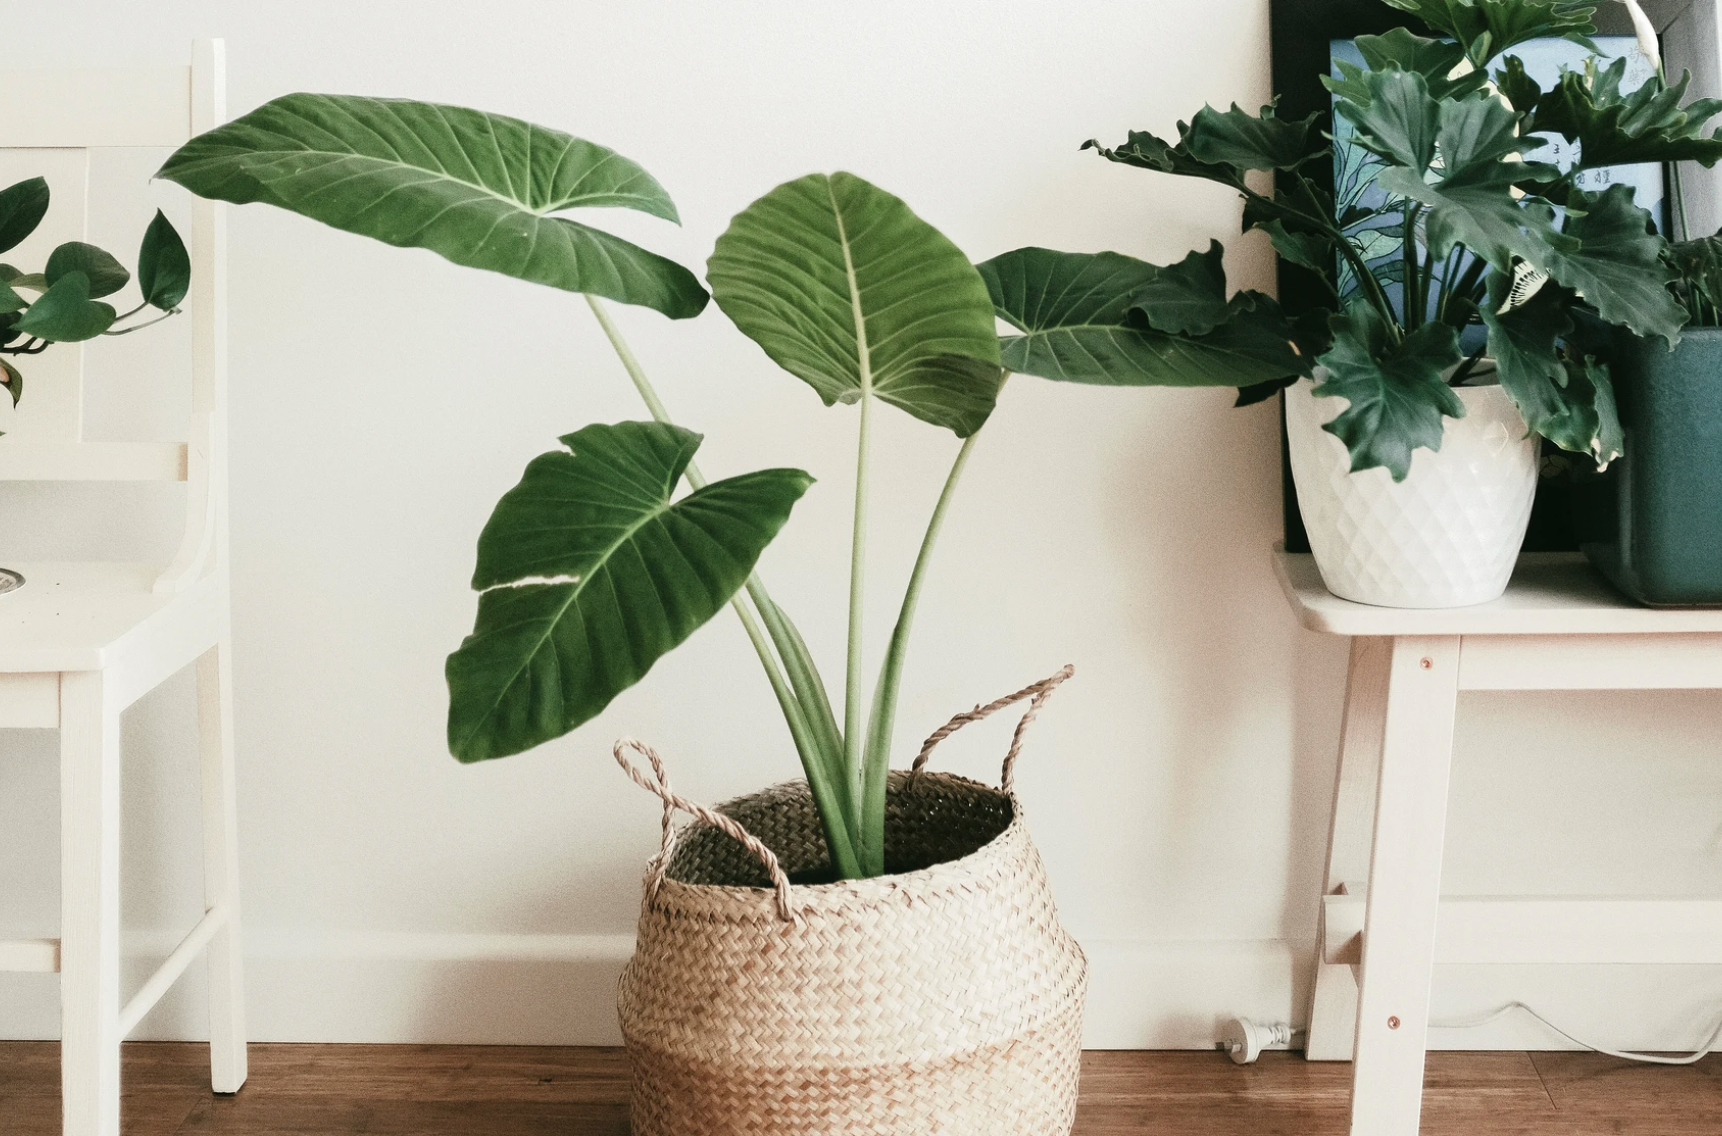 3 indoor plants in a home setting with wood floors